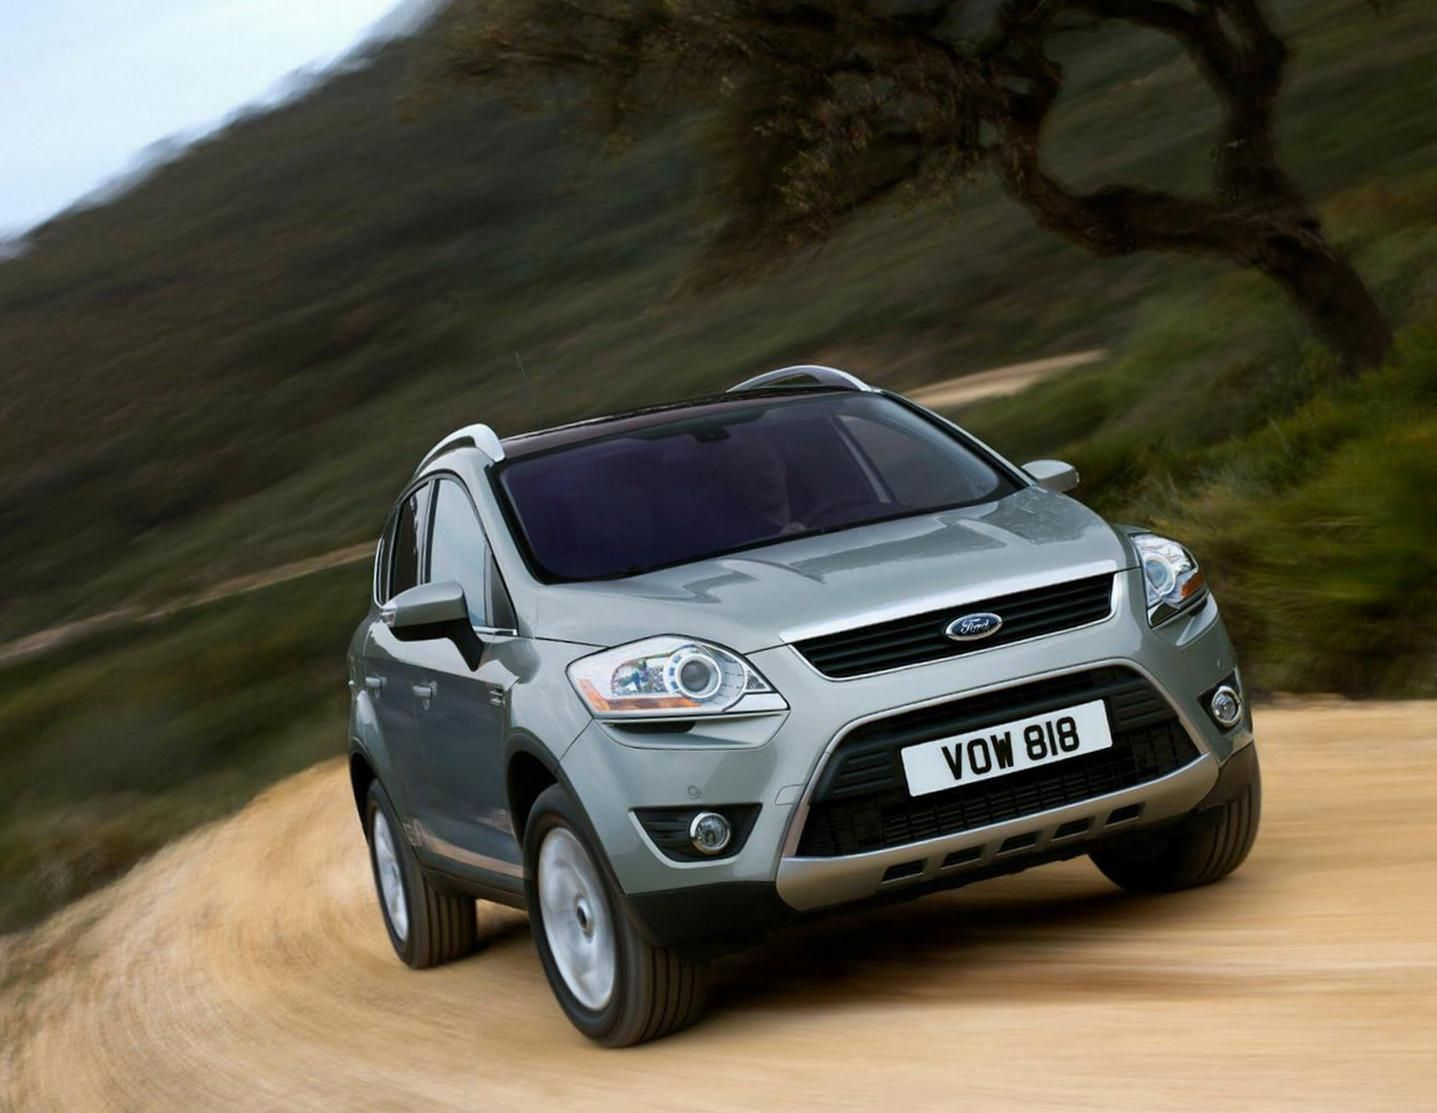 Ford Kuga Tuning Http Autotras Com